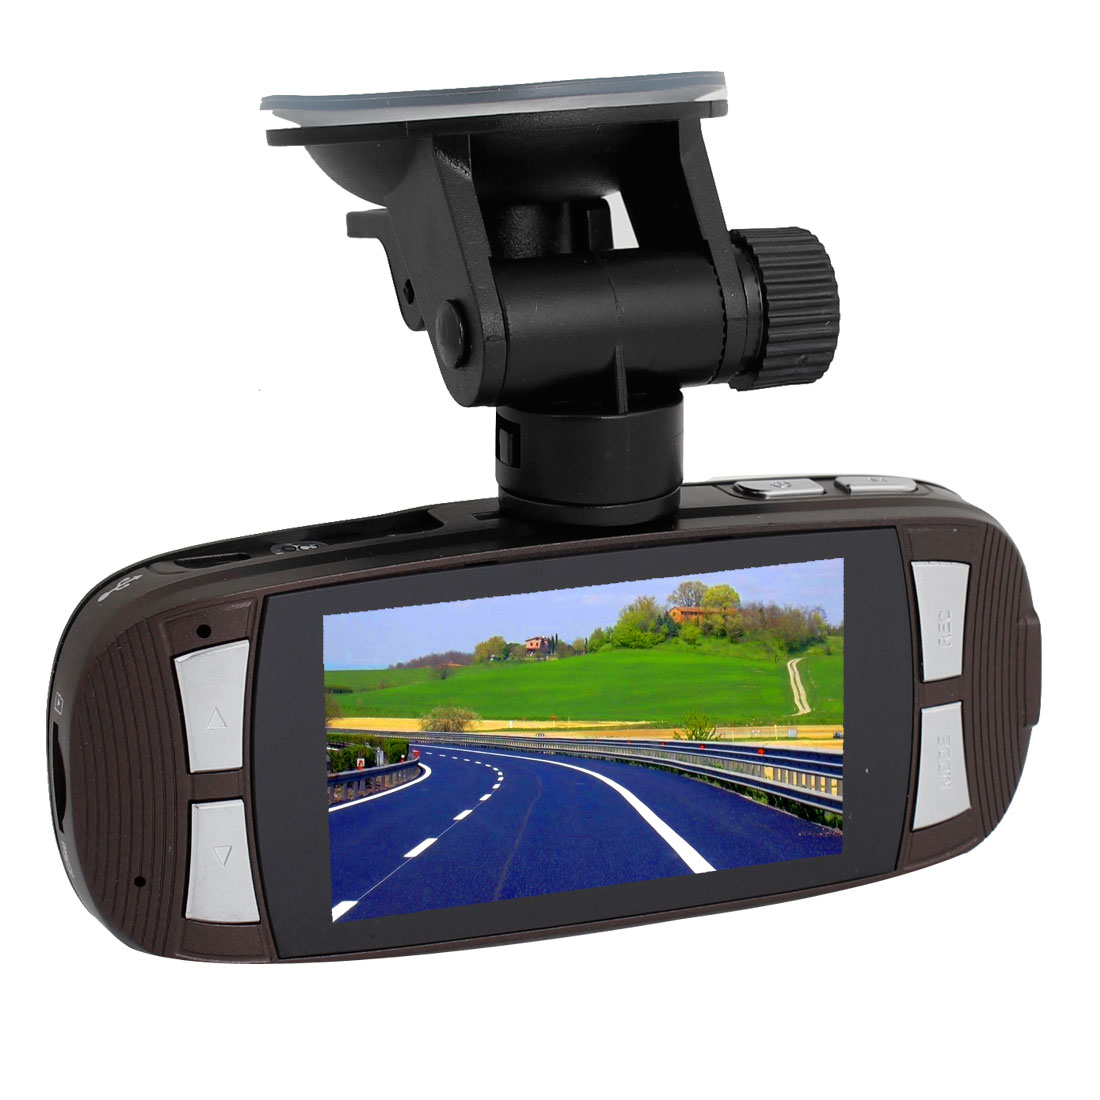 1080P HD LCD Display DVR Camera Recorder Video Dashboard Vehicle Cam